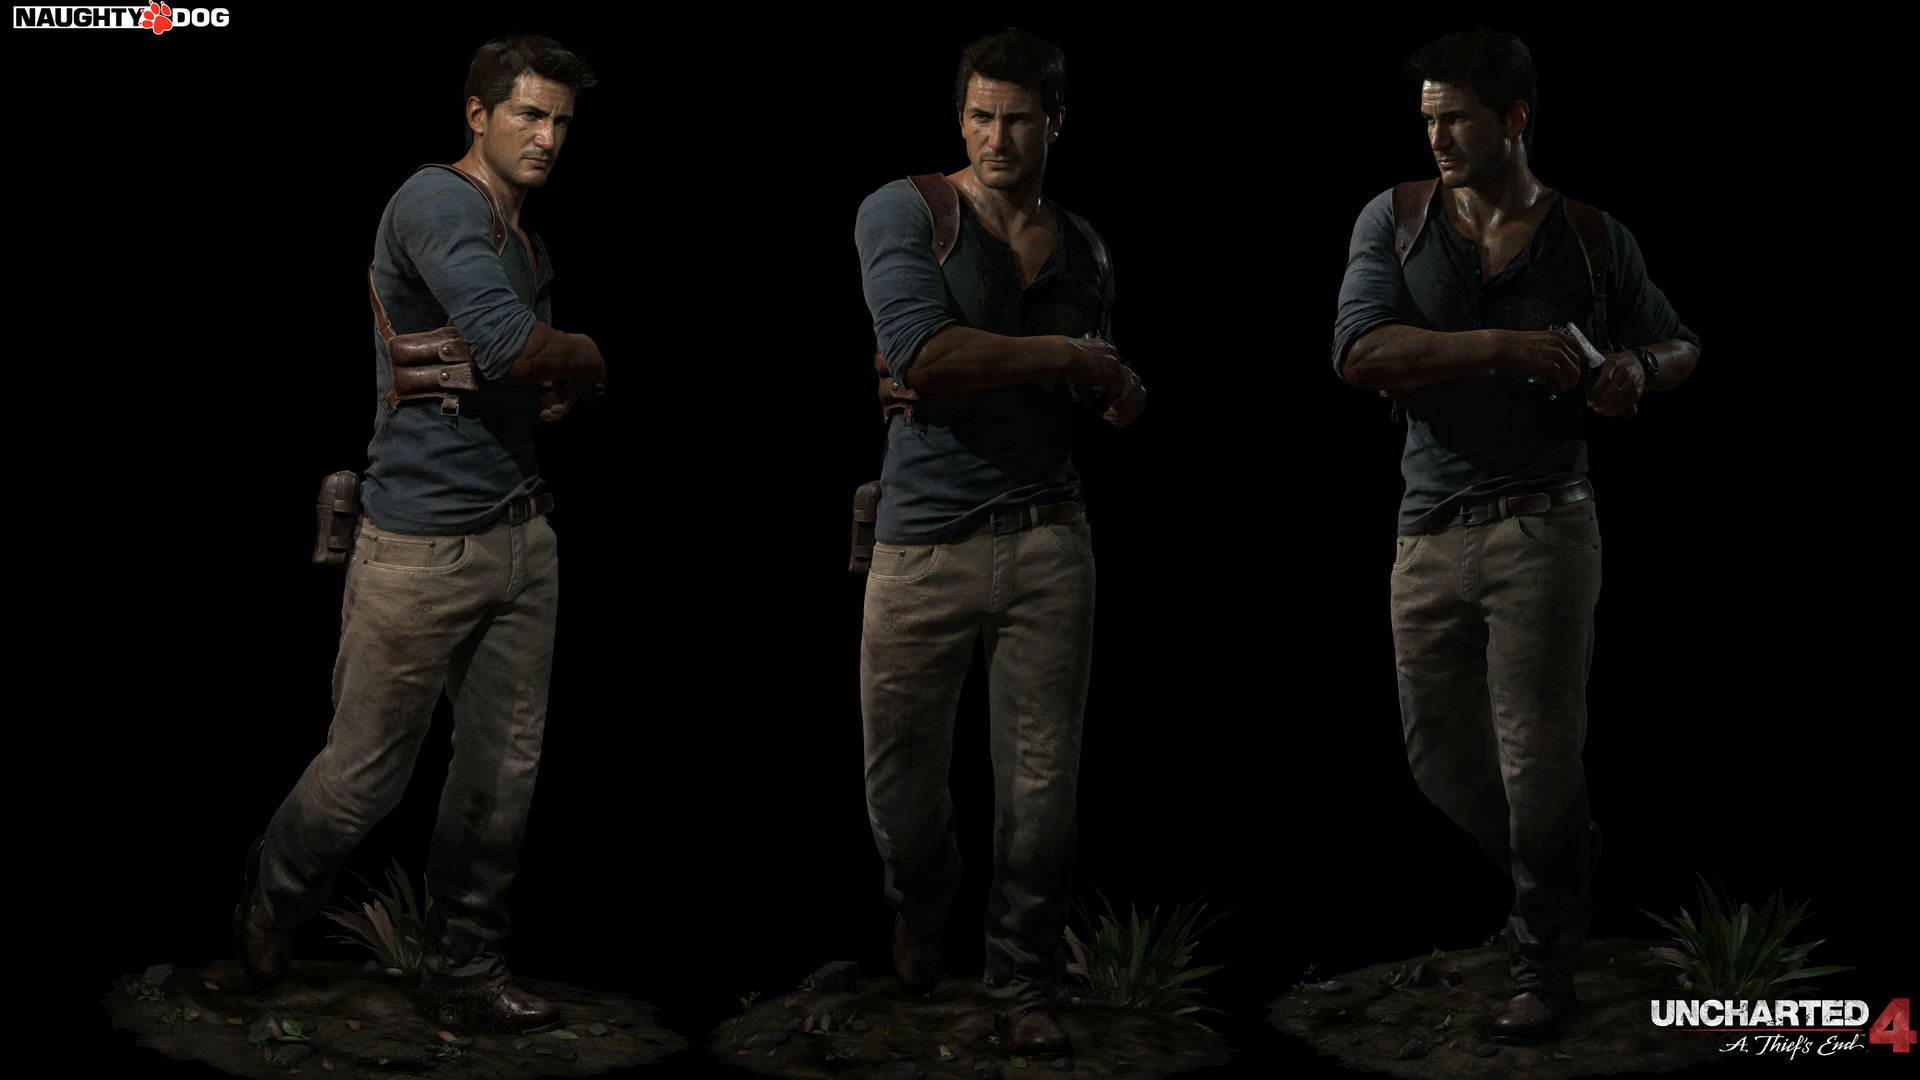 Uncharted4-AThief-sEnd PS4 Div 021